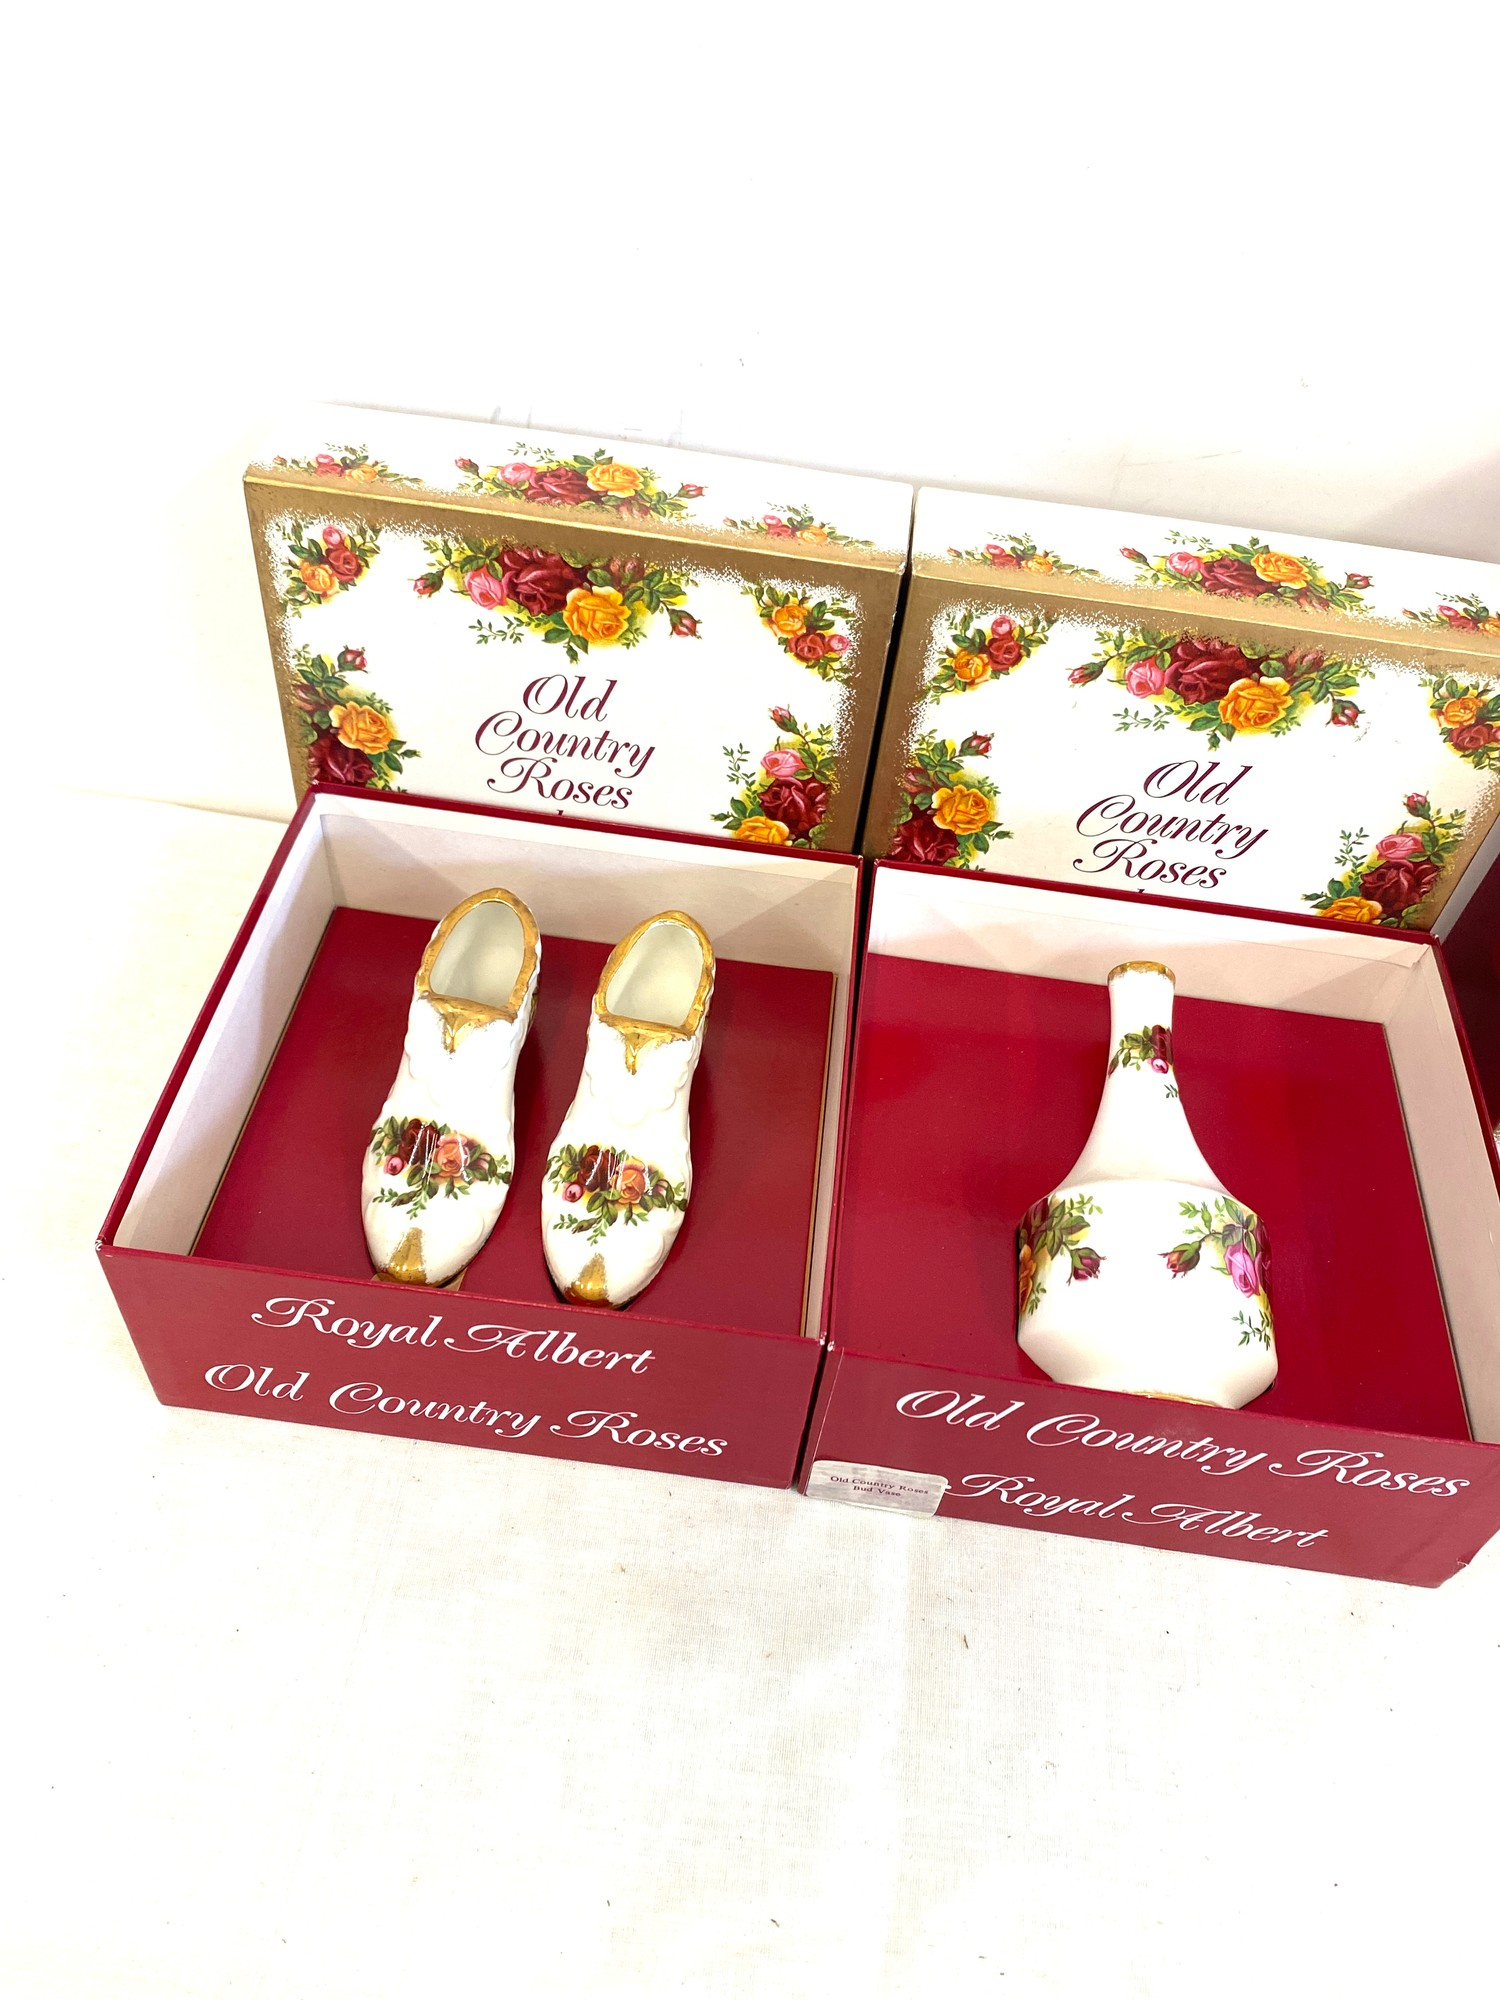 3 Boxed Royal Albert Old Country Roses pottery pieces includes vases etc - Image 2 of 4